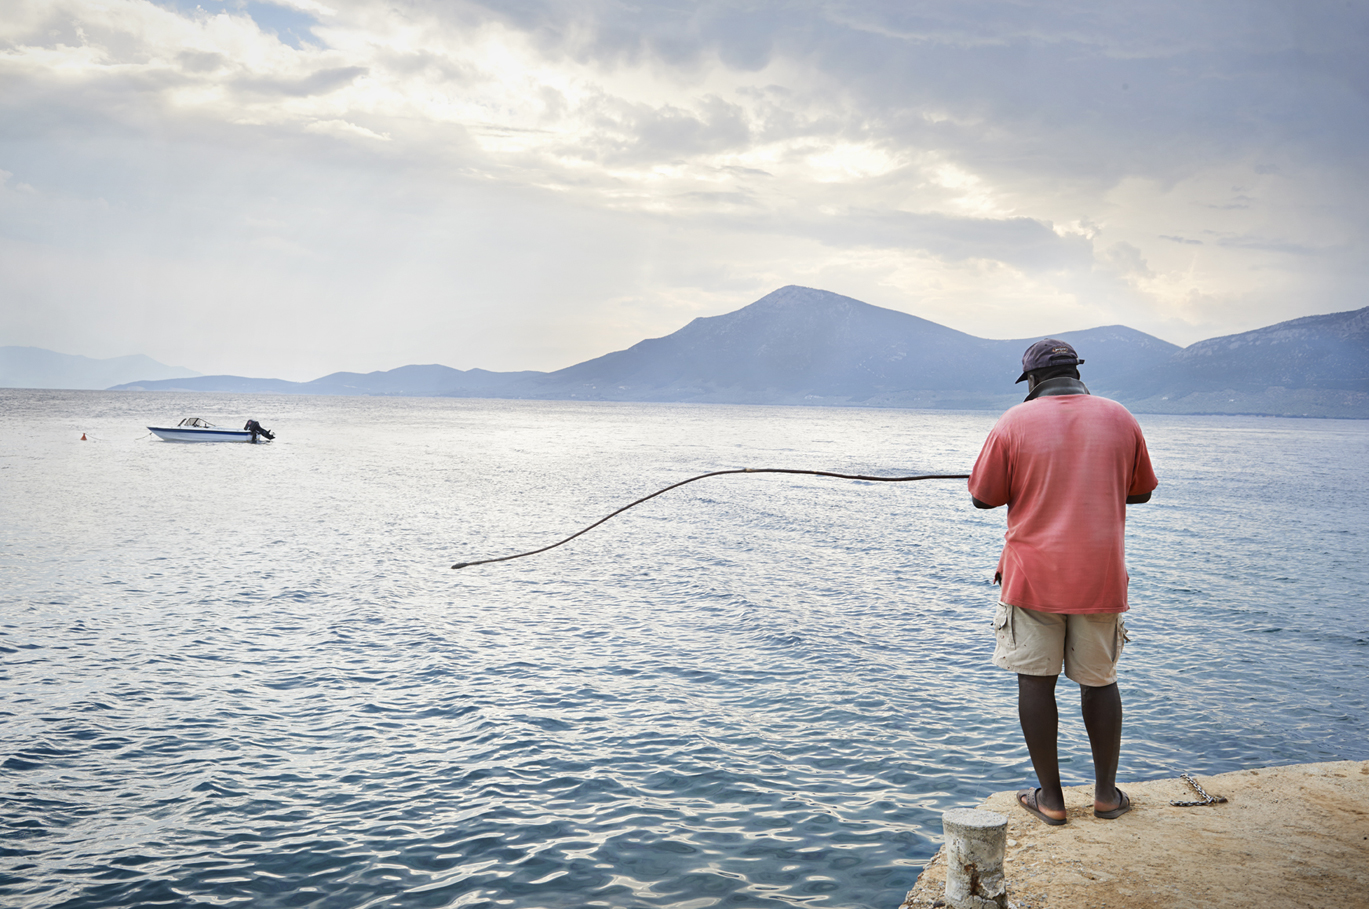 Ernest, the Island's caretaker fishing with a homemade rod. fisherman fishing photography photographer boat london greece retreat sunset pink shirt mountains sea jetty still life african